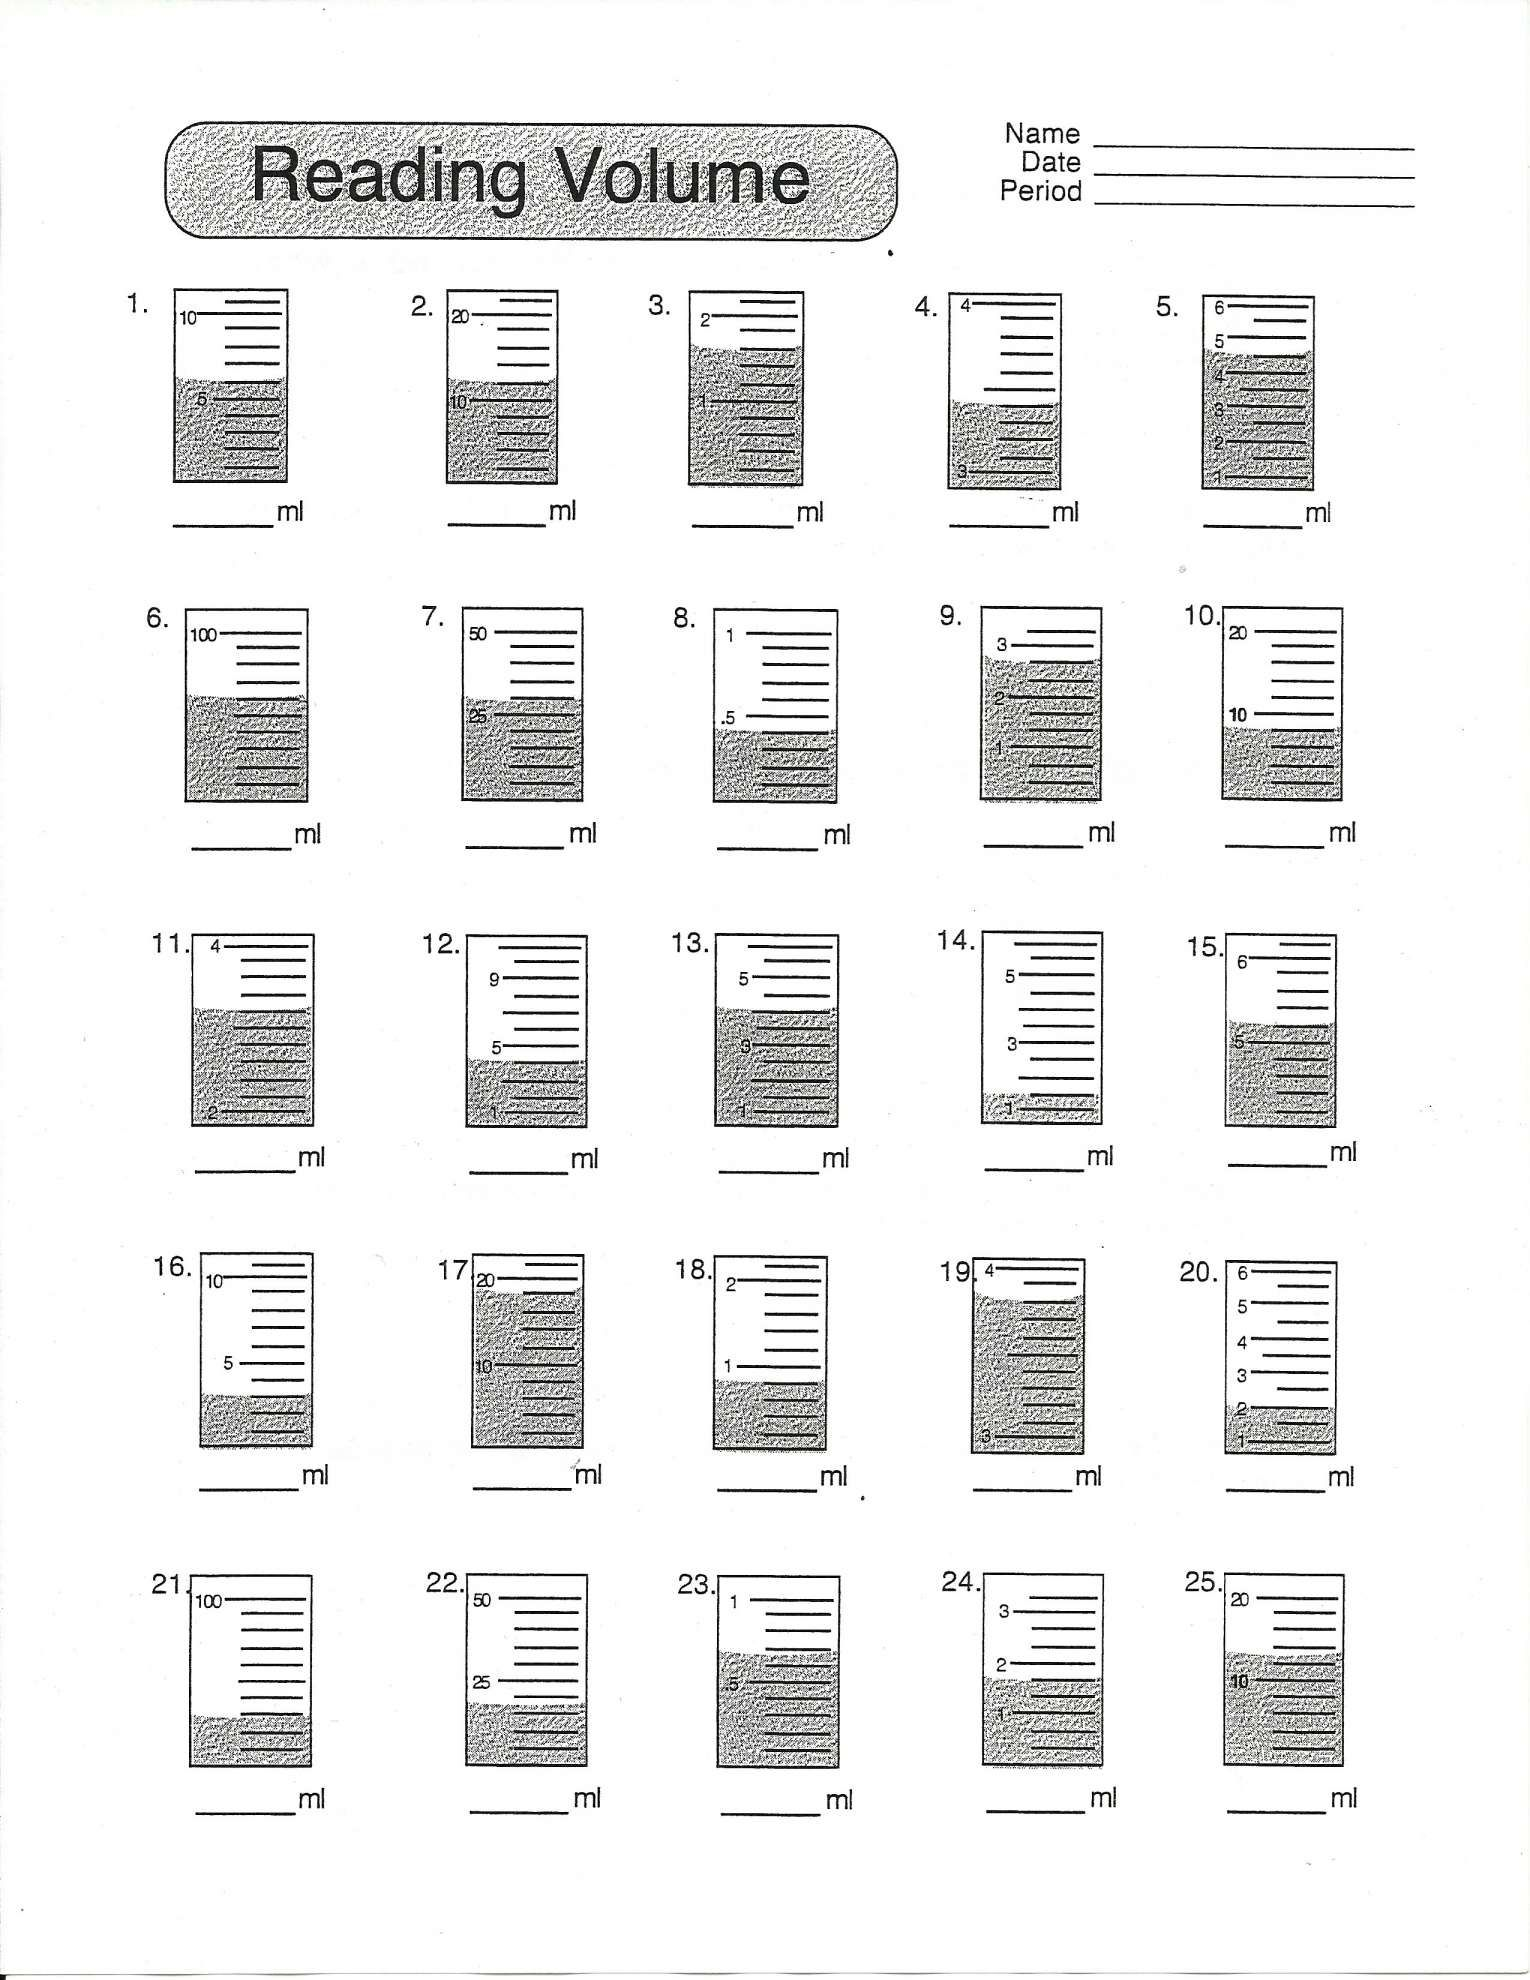 10 Reading Volume Worksheet